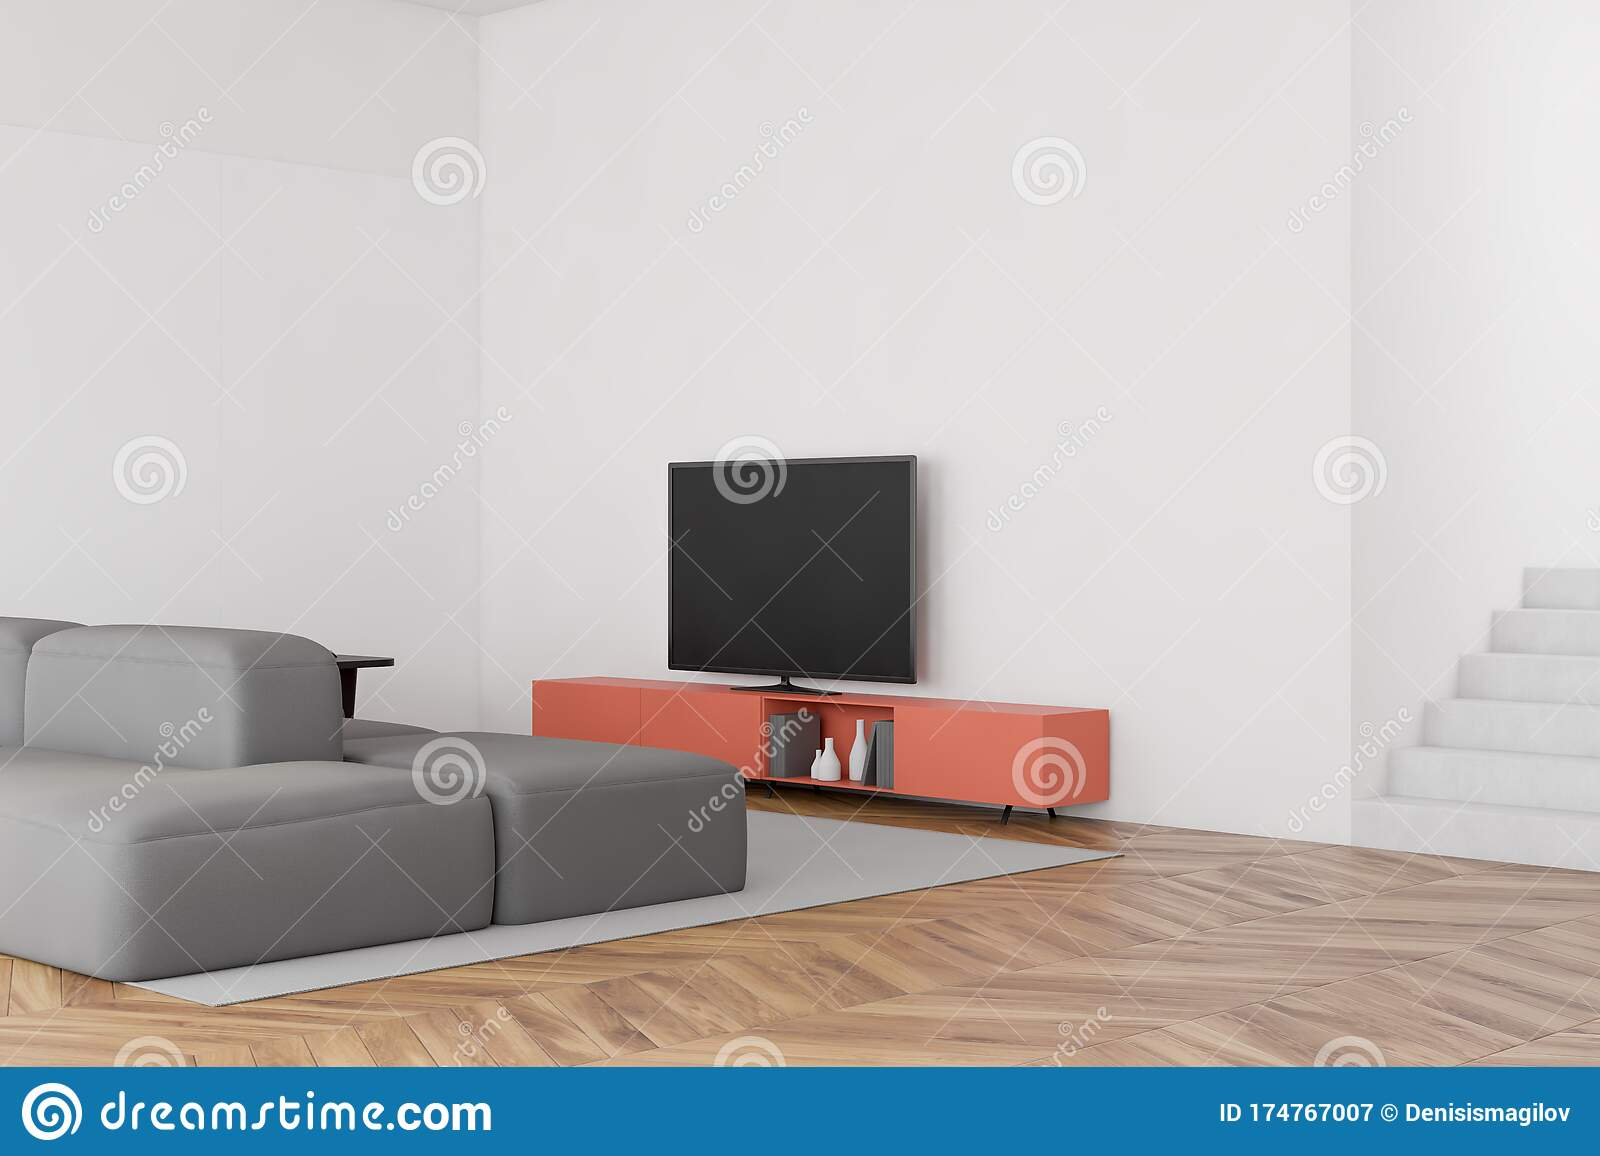 White Living Room With Sofa Tv And Stairs Stock Illustration Illustration Of Couch Sitting 174767007